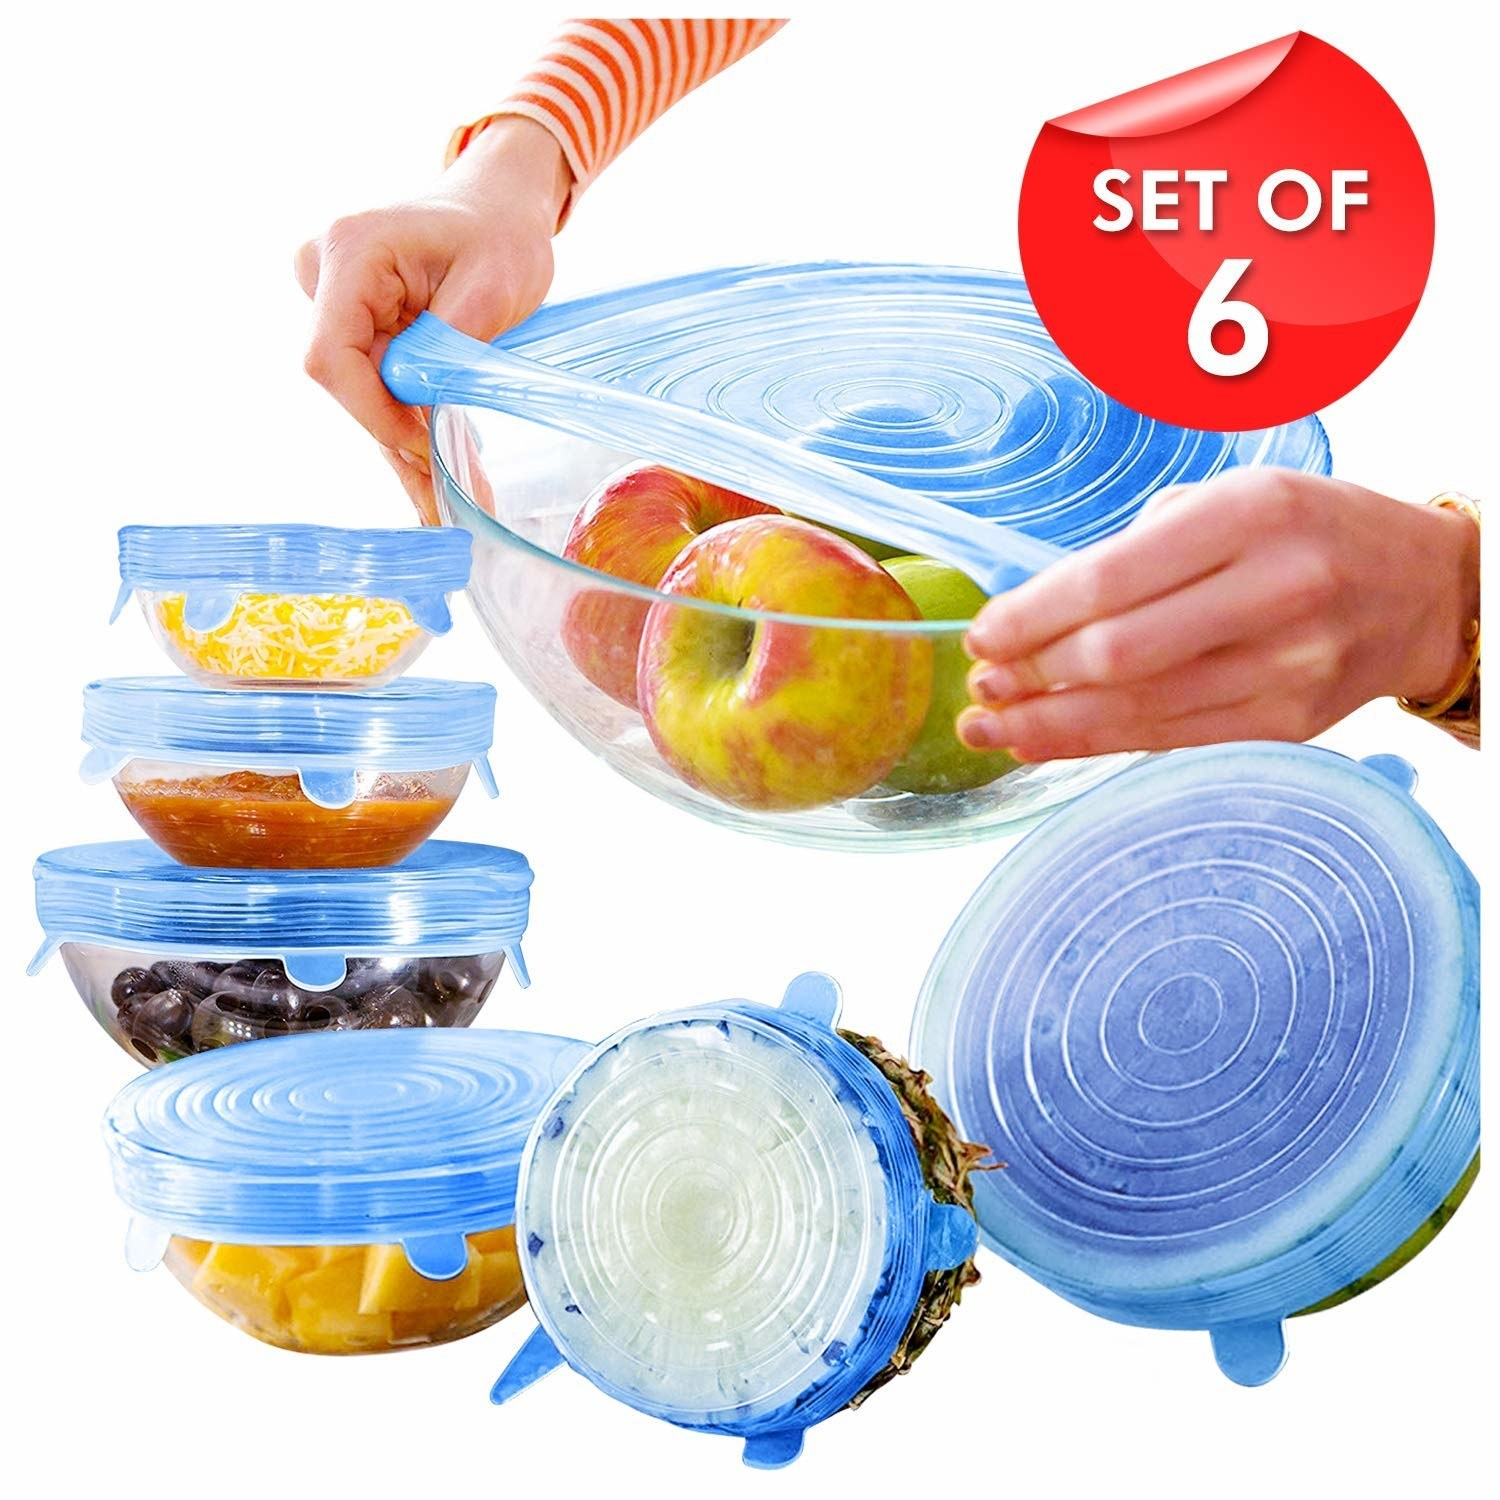 A silicone stretch lid being placed over a bowl of food, and six food bowls of different sizes with stretch lids already on them